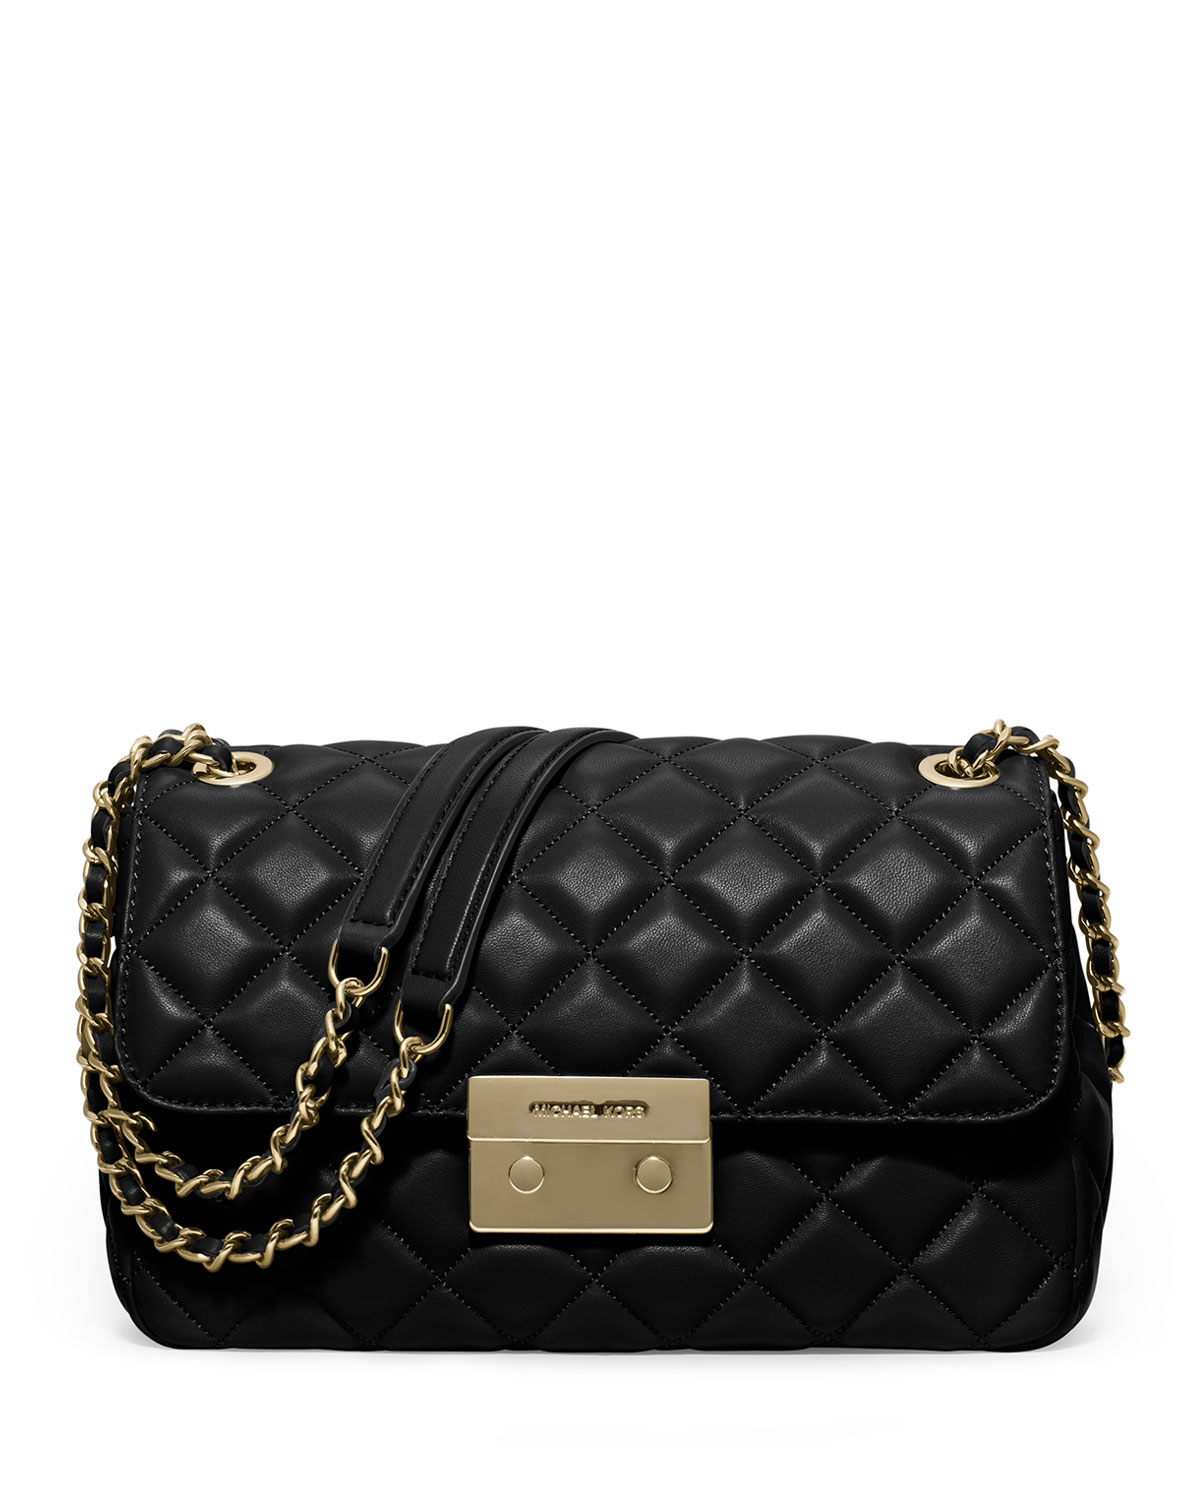 ccdbf51d9b4c MICHAEL Michael Kors Sloan Large Quilted Leather Shoulder Bag